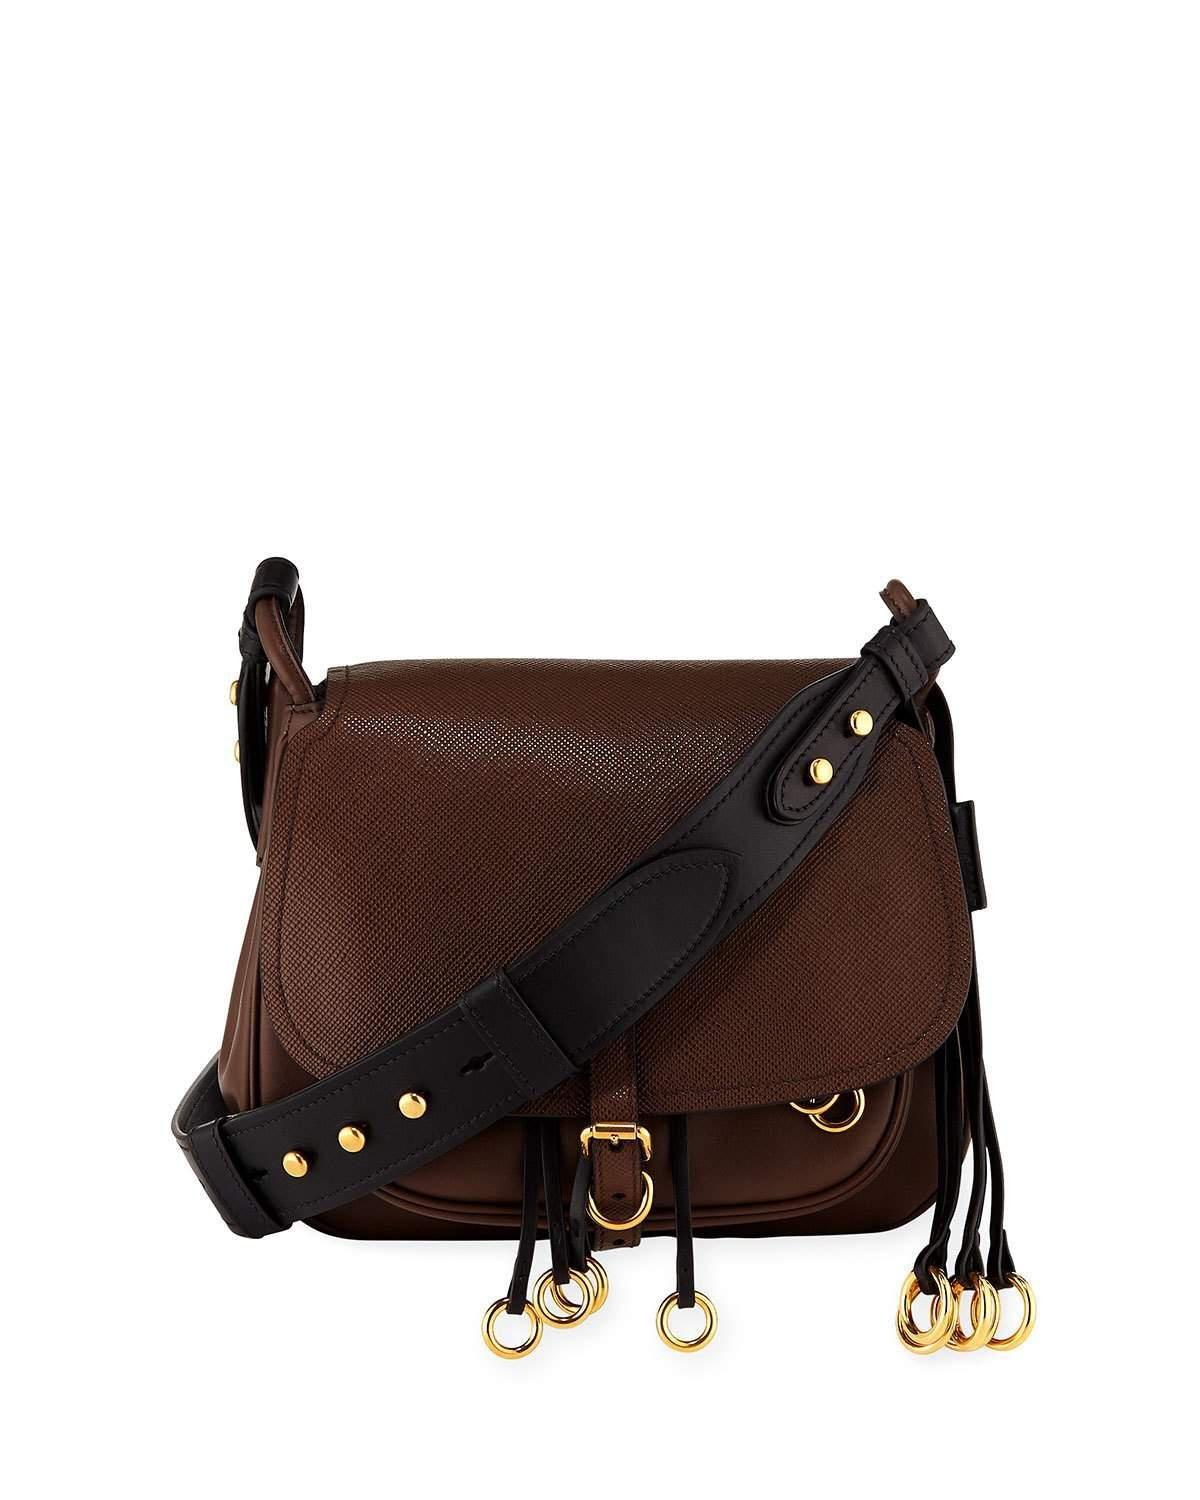 445144c9bb88 Lyst - Prada Saffiano Corsaire Hunting Shoulder Bag in Brown